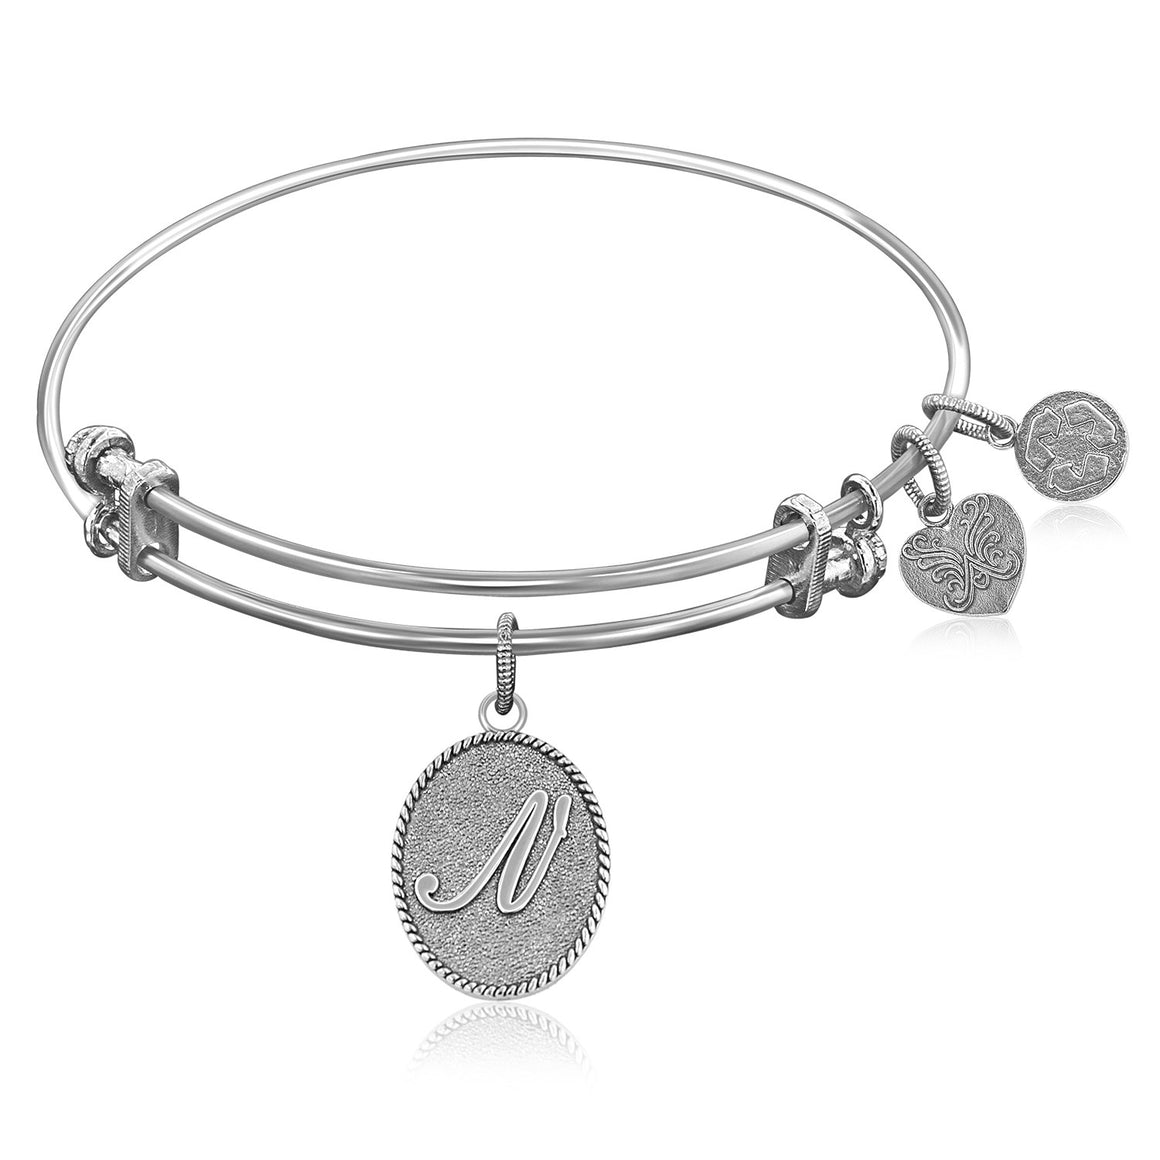 Expandable Bangle in White Tone Brass with Initial N Symbol